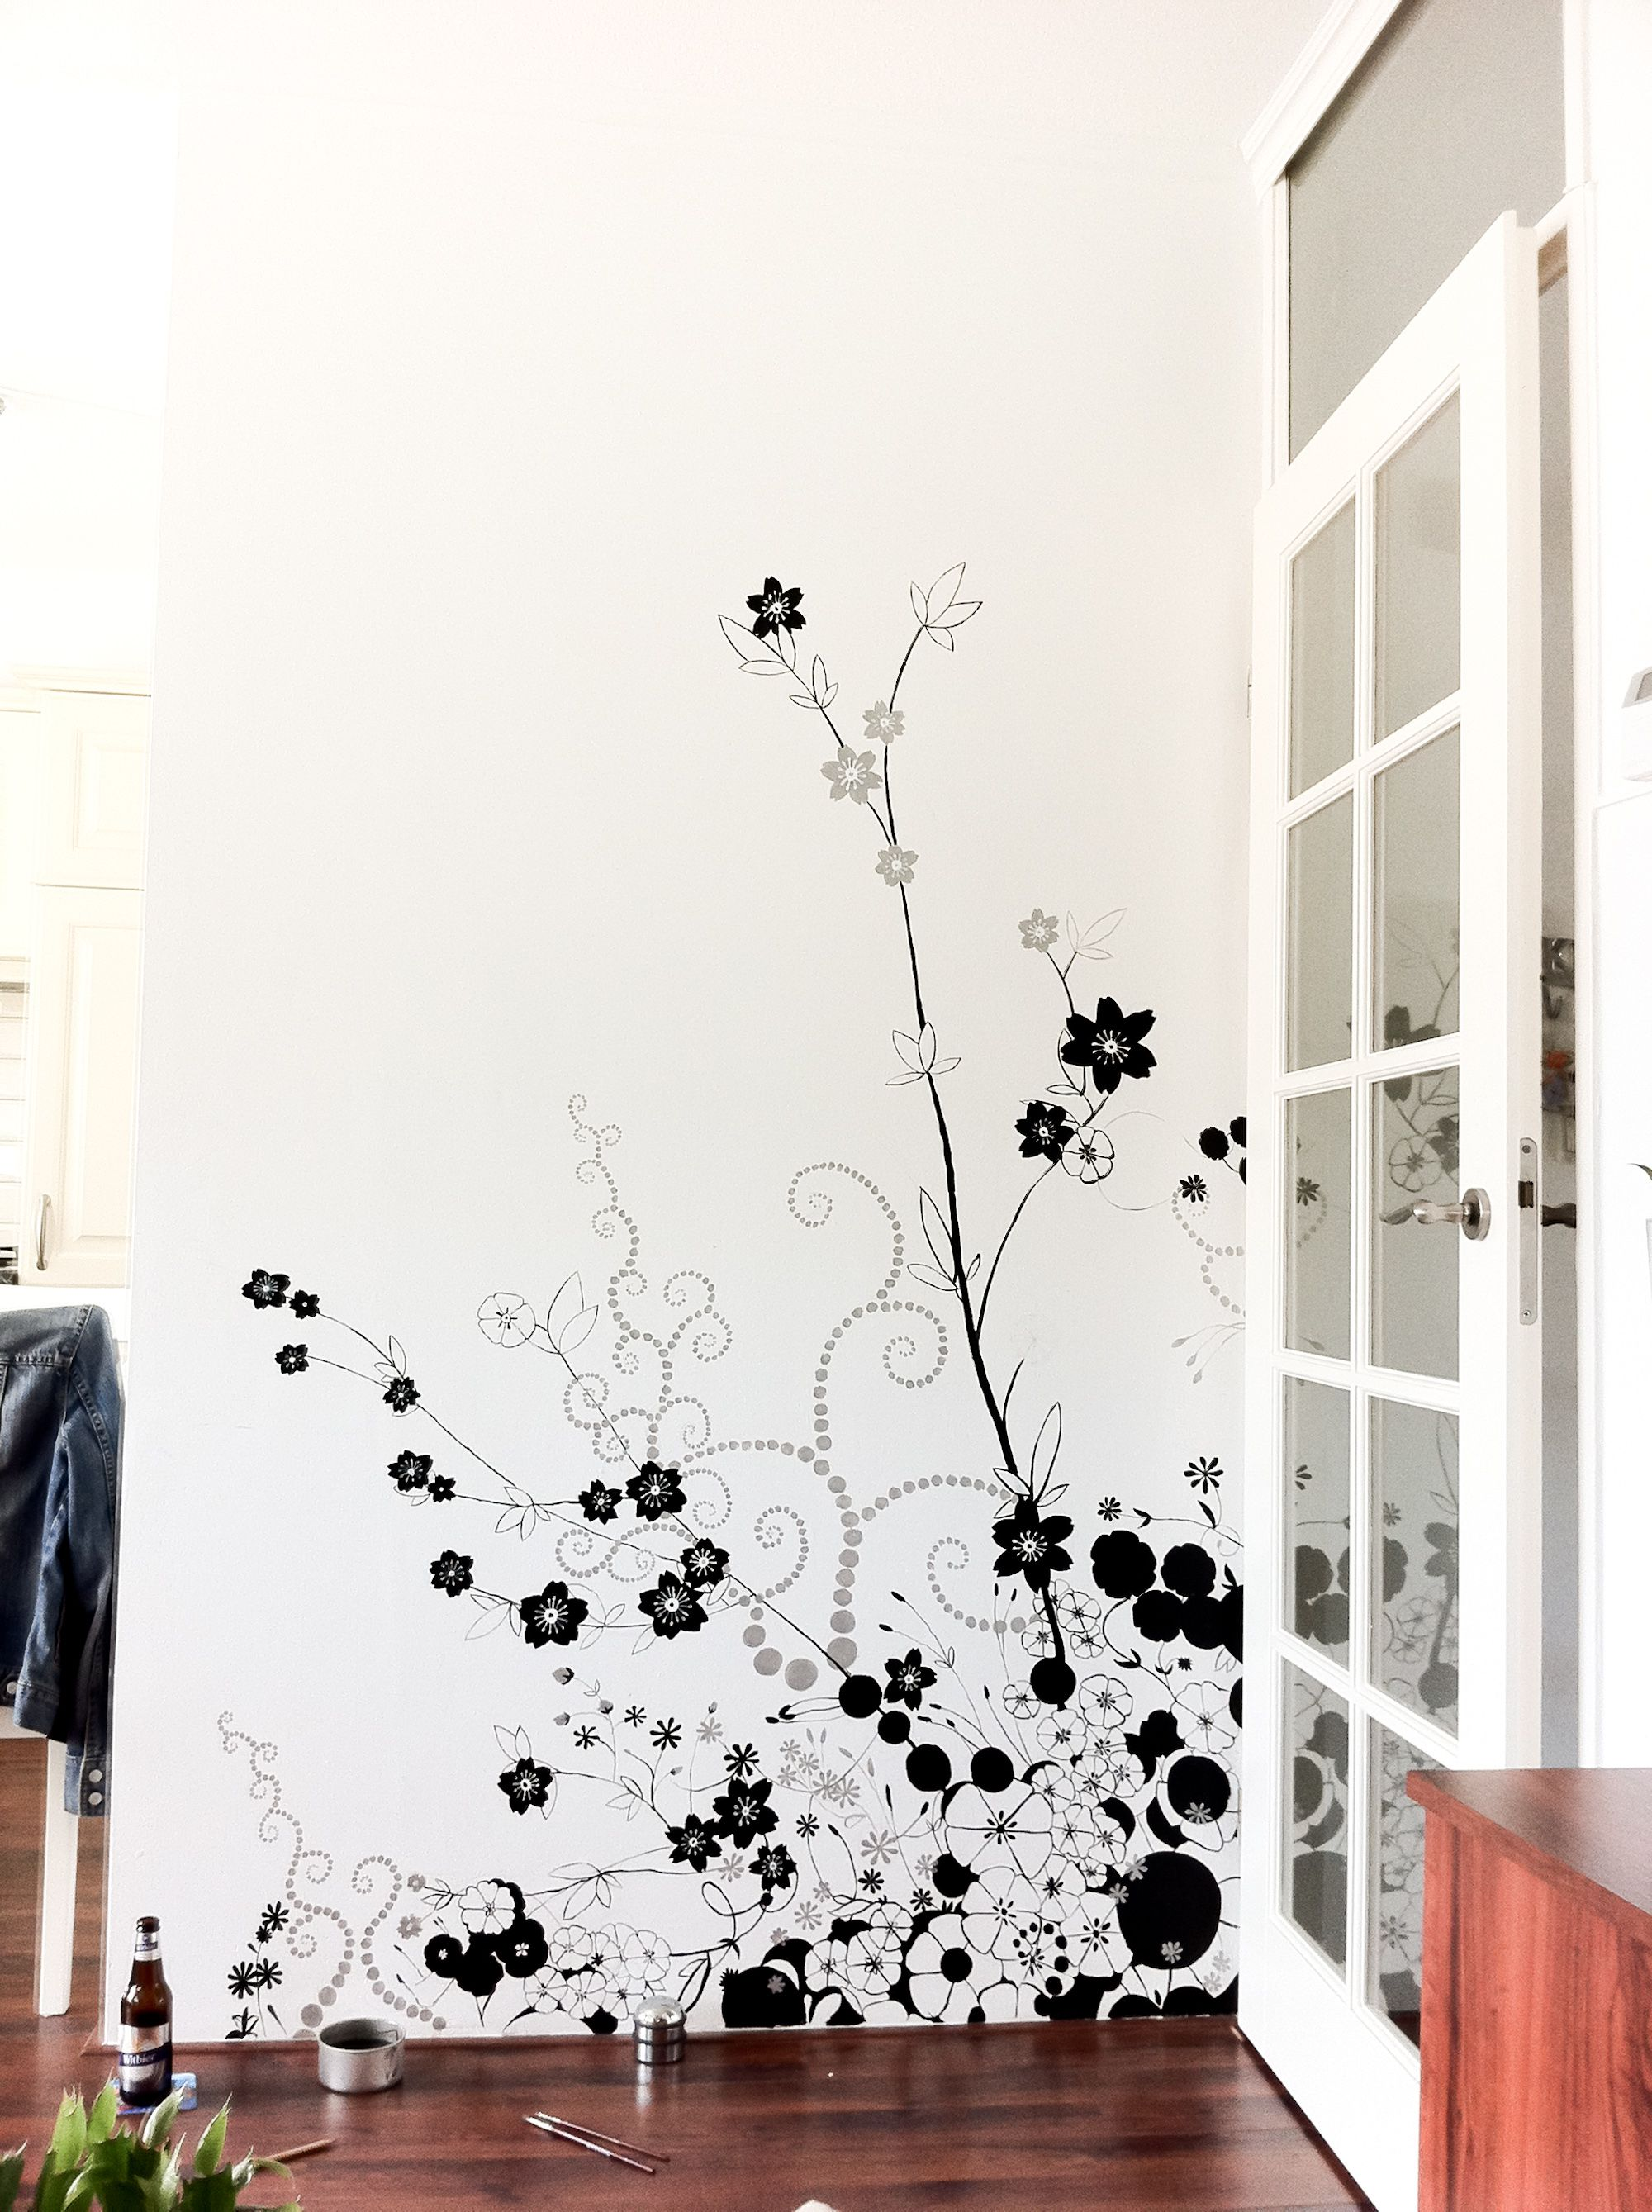 Wall Painting Patterns Designs | Wall Painting Idea | Pinterest ... for Cool Wall Paint Techniques  173lyp